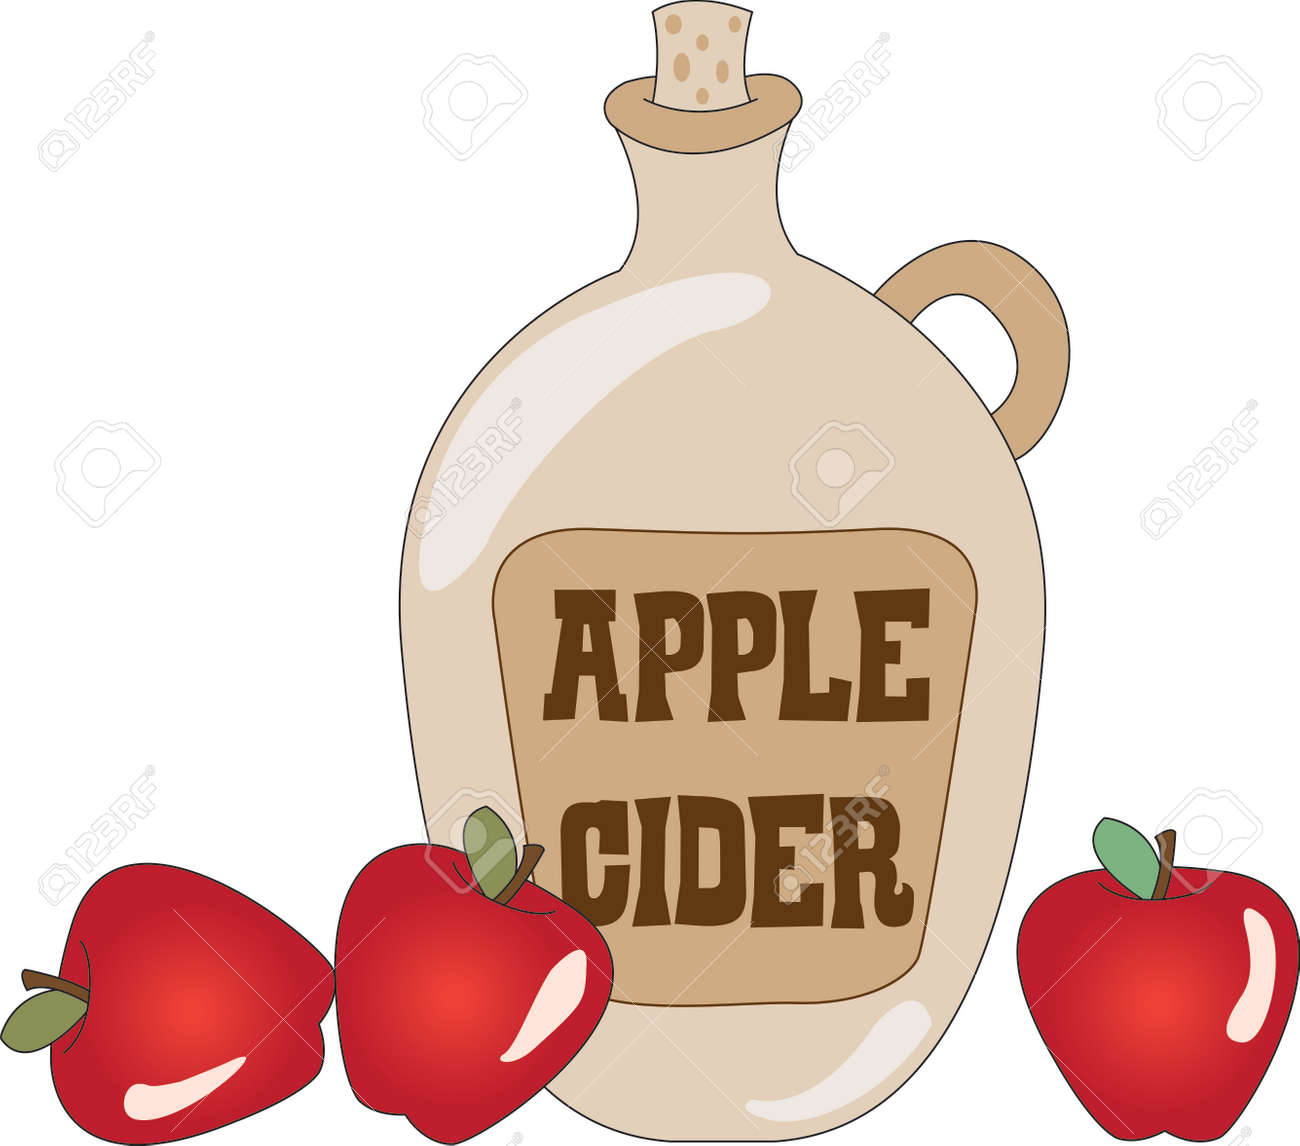 a taste treat in a bottle apple cider a warm treat for cool rh 123rf com Apple Pie Clip Art Apple Pie Clip Art